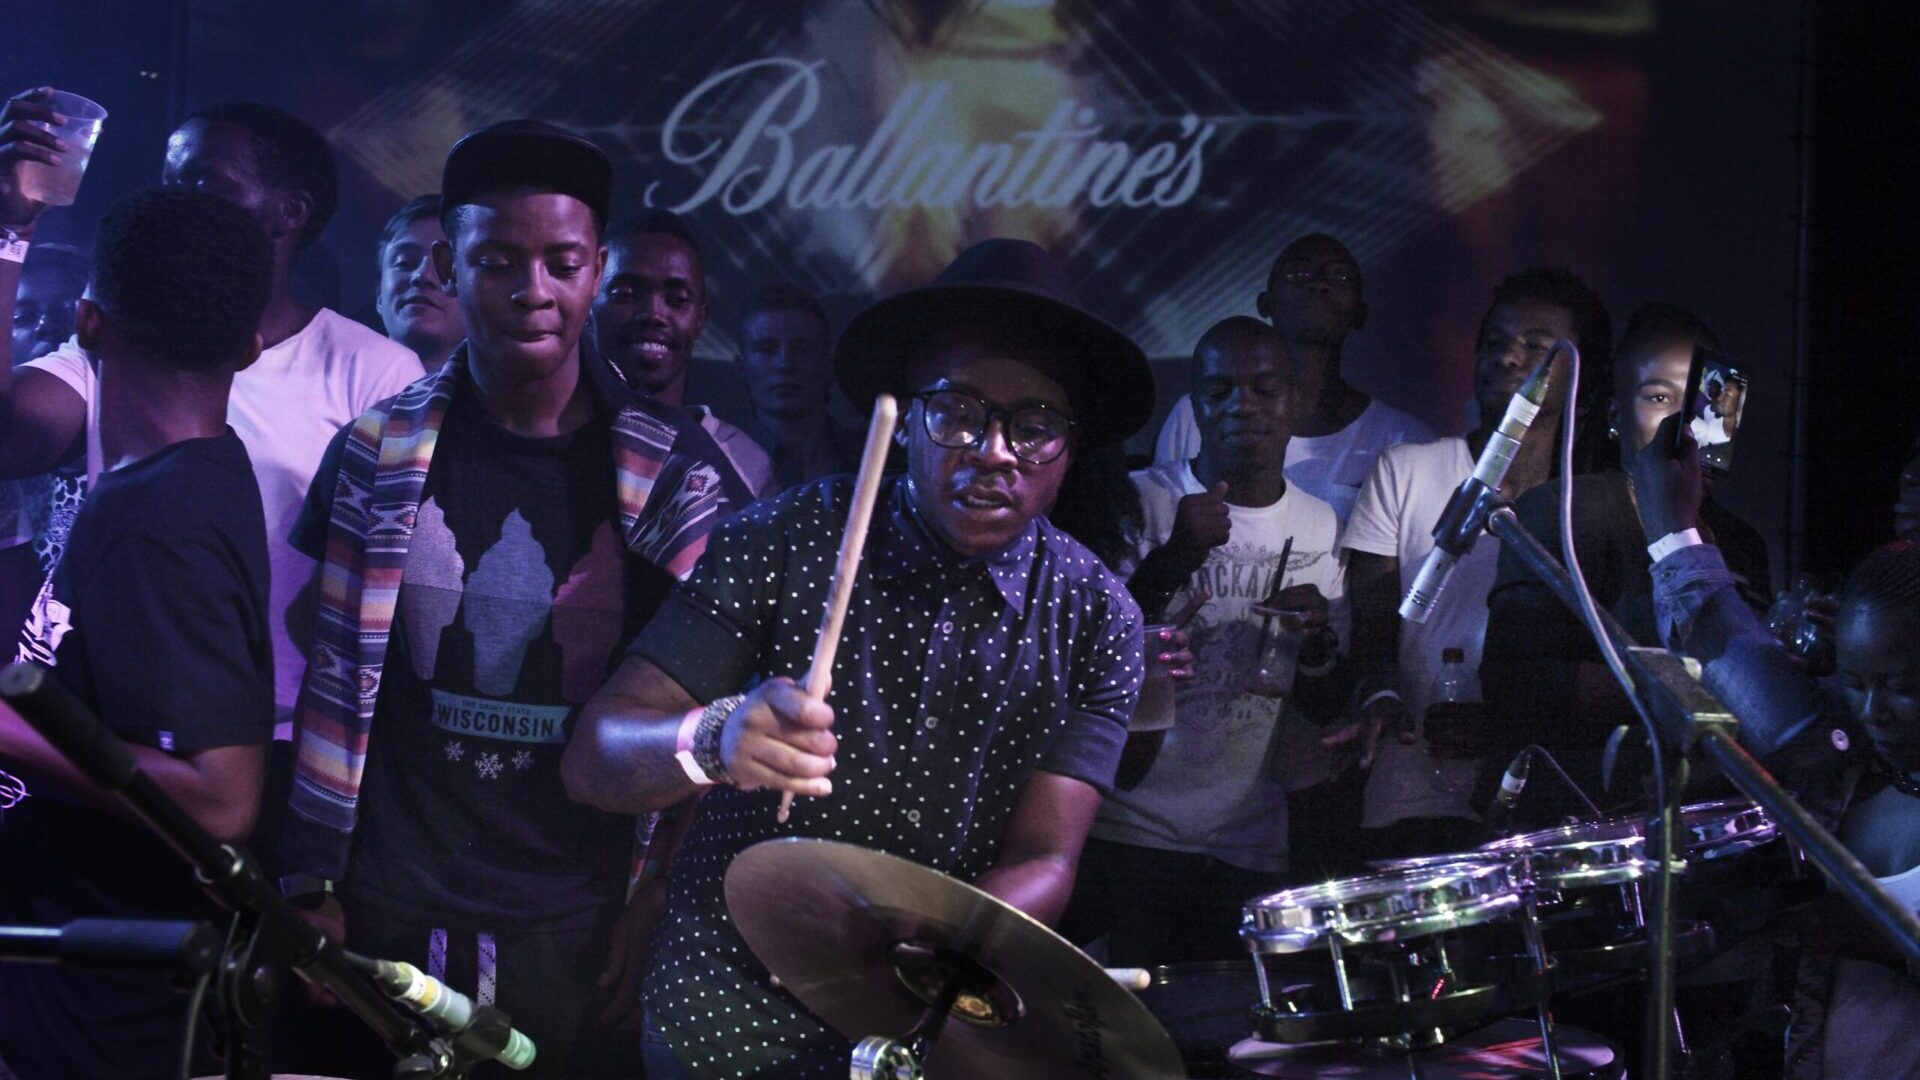 ballantines-boiler-room-true-music-africa-douala